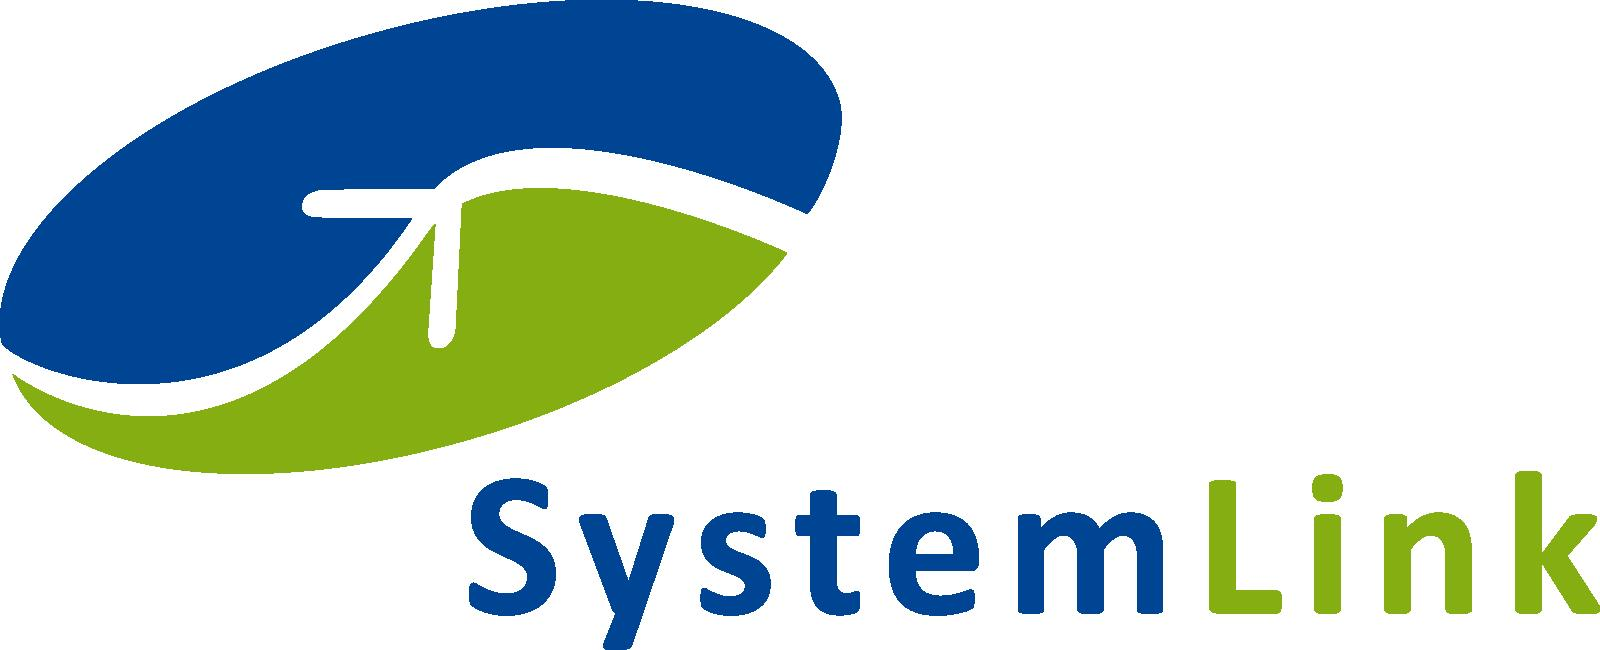 SystemLink – a new large multidisciplinary and multiyear